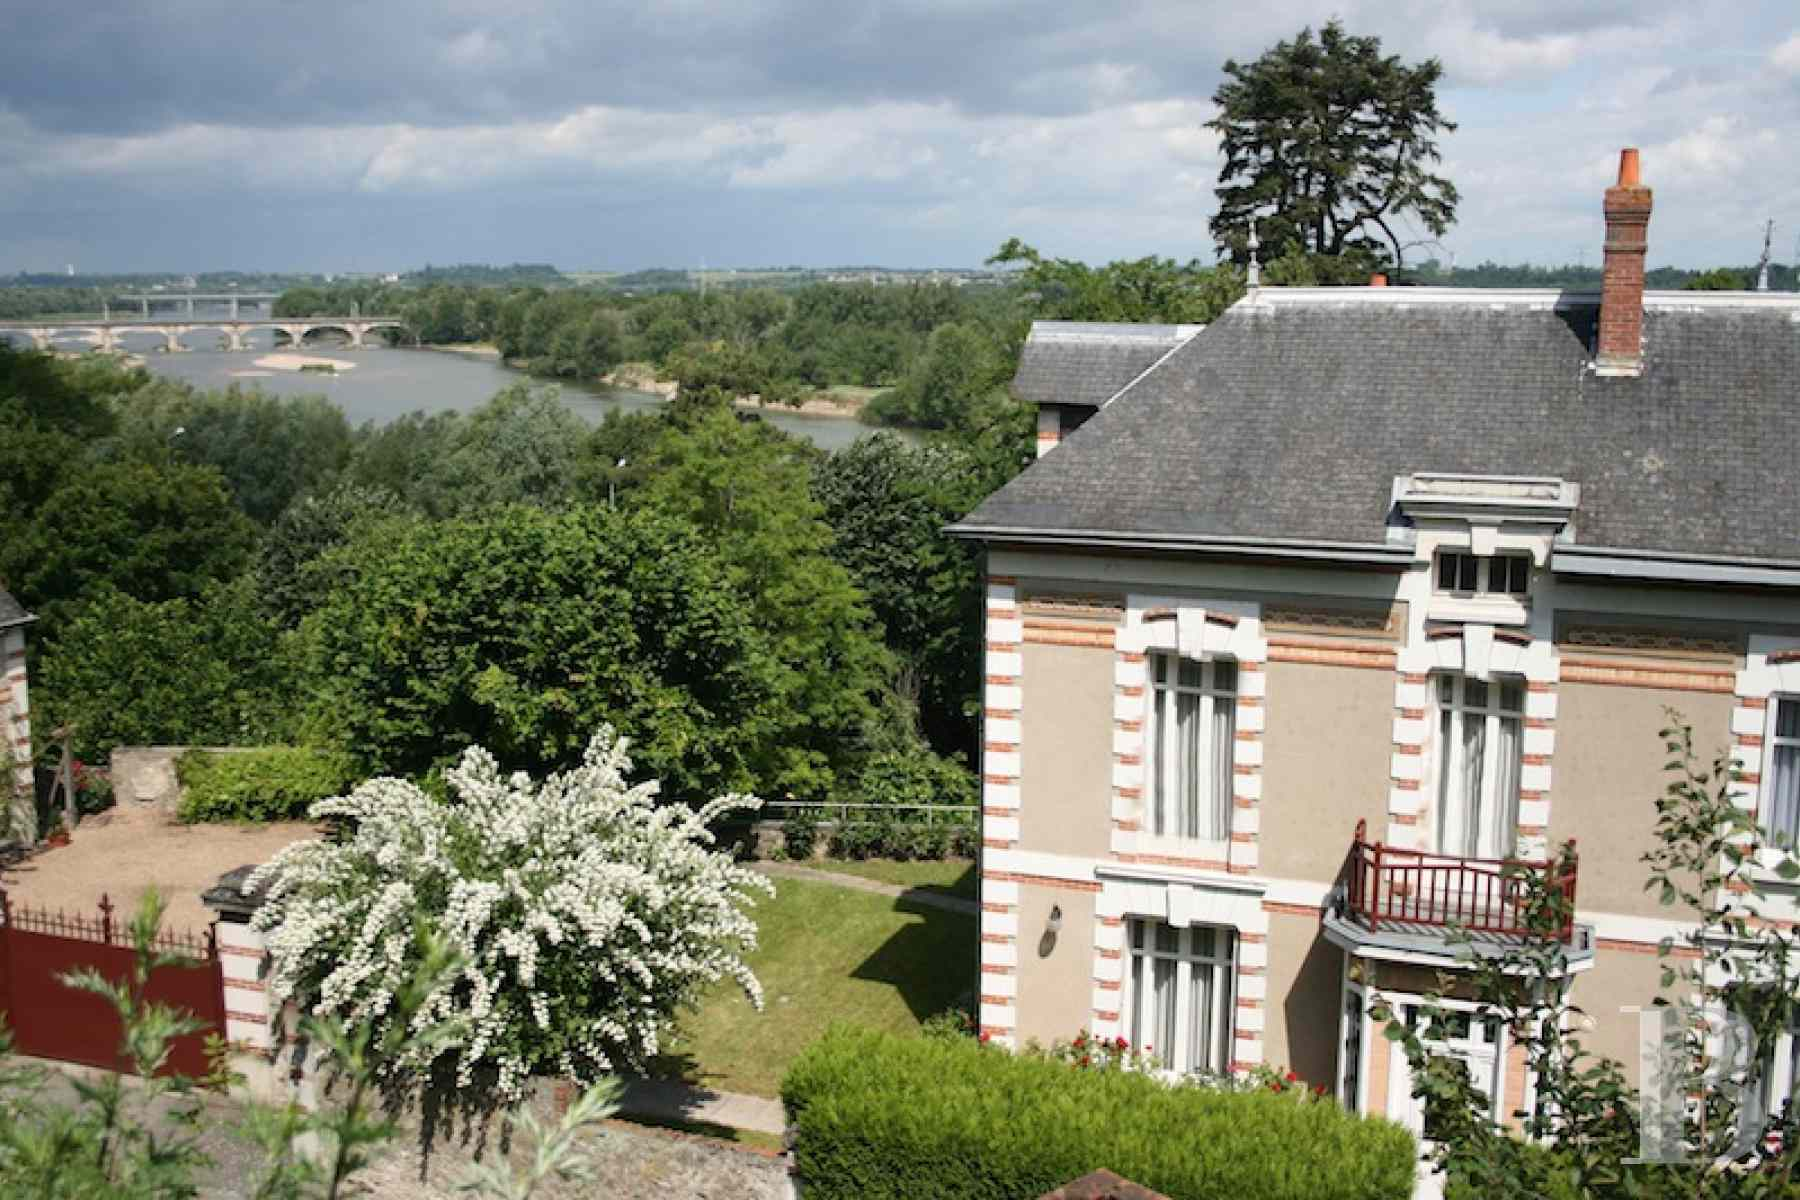 property for sale France center val de loire tours amboise - 1 zoom